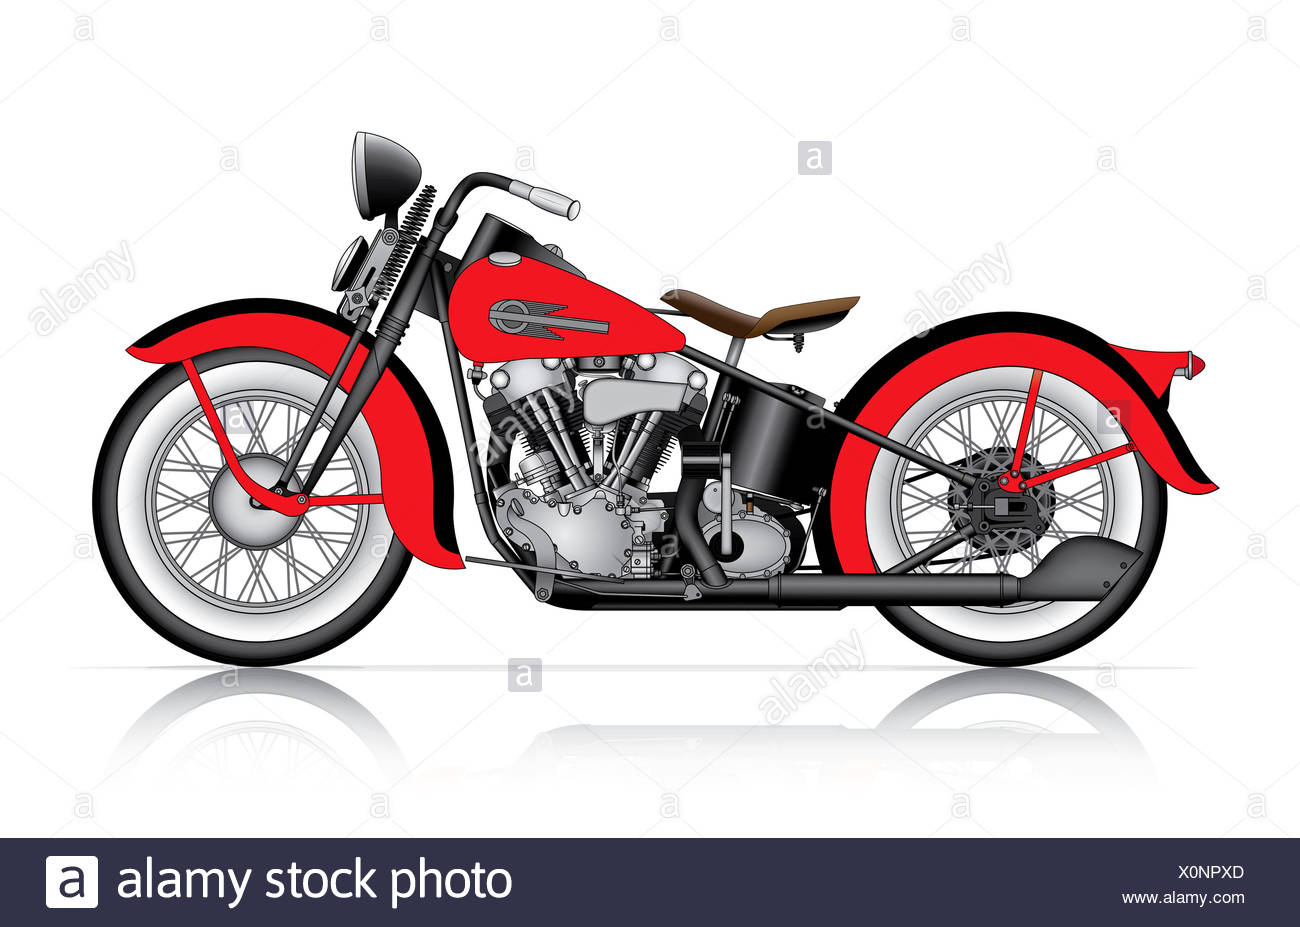 red classic motorcycle stock image